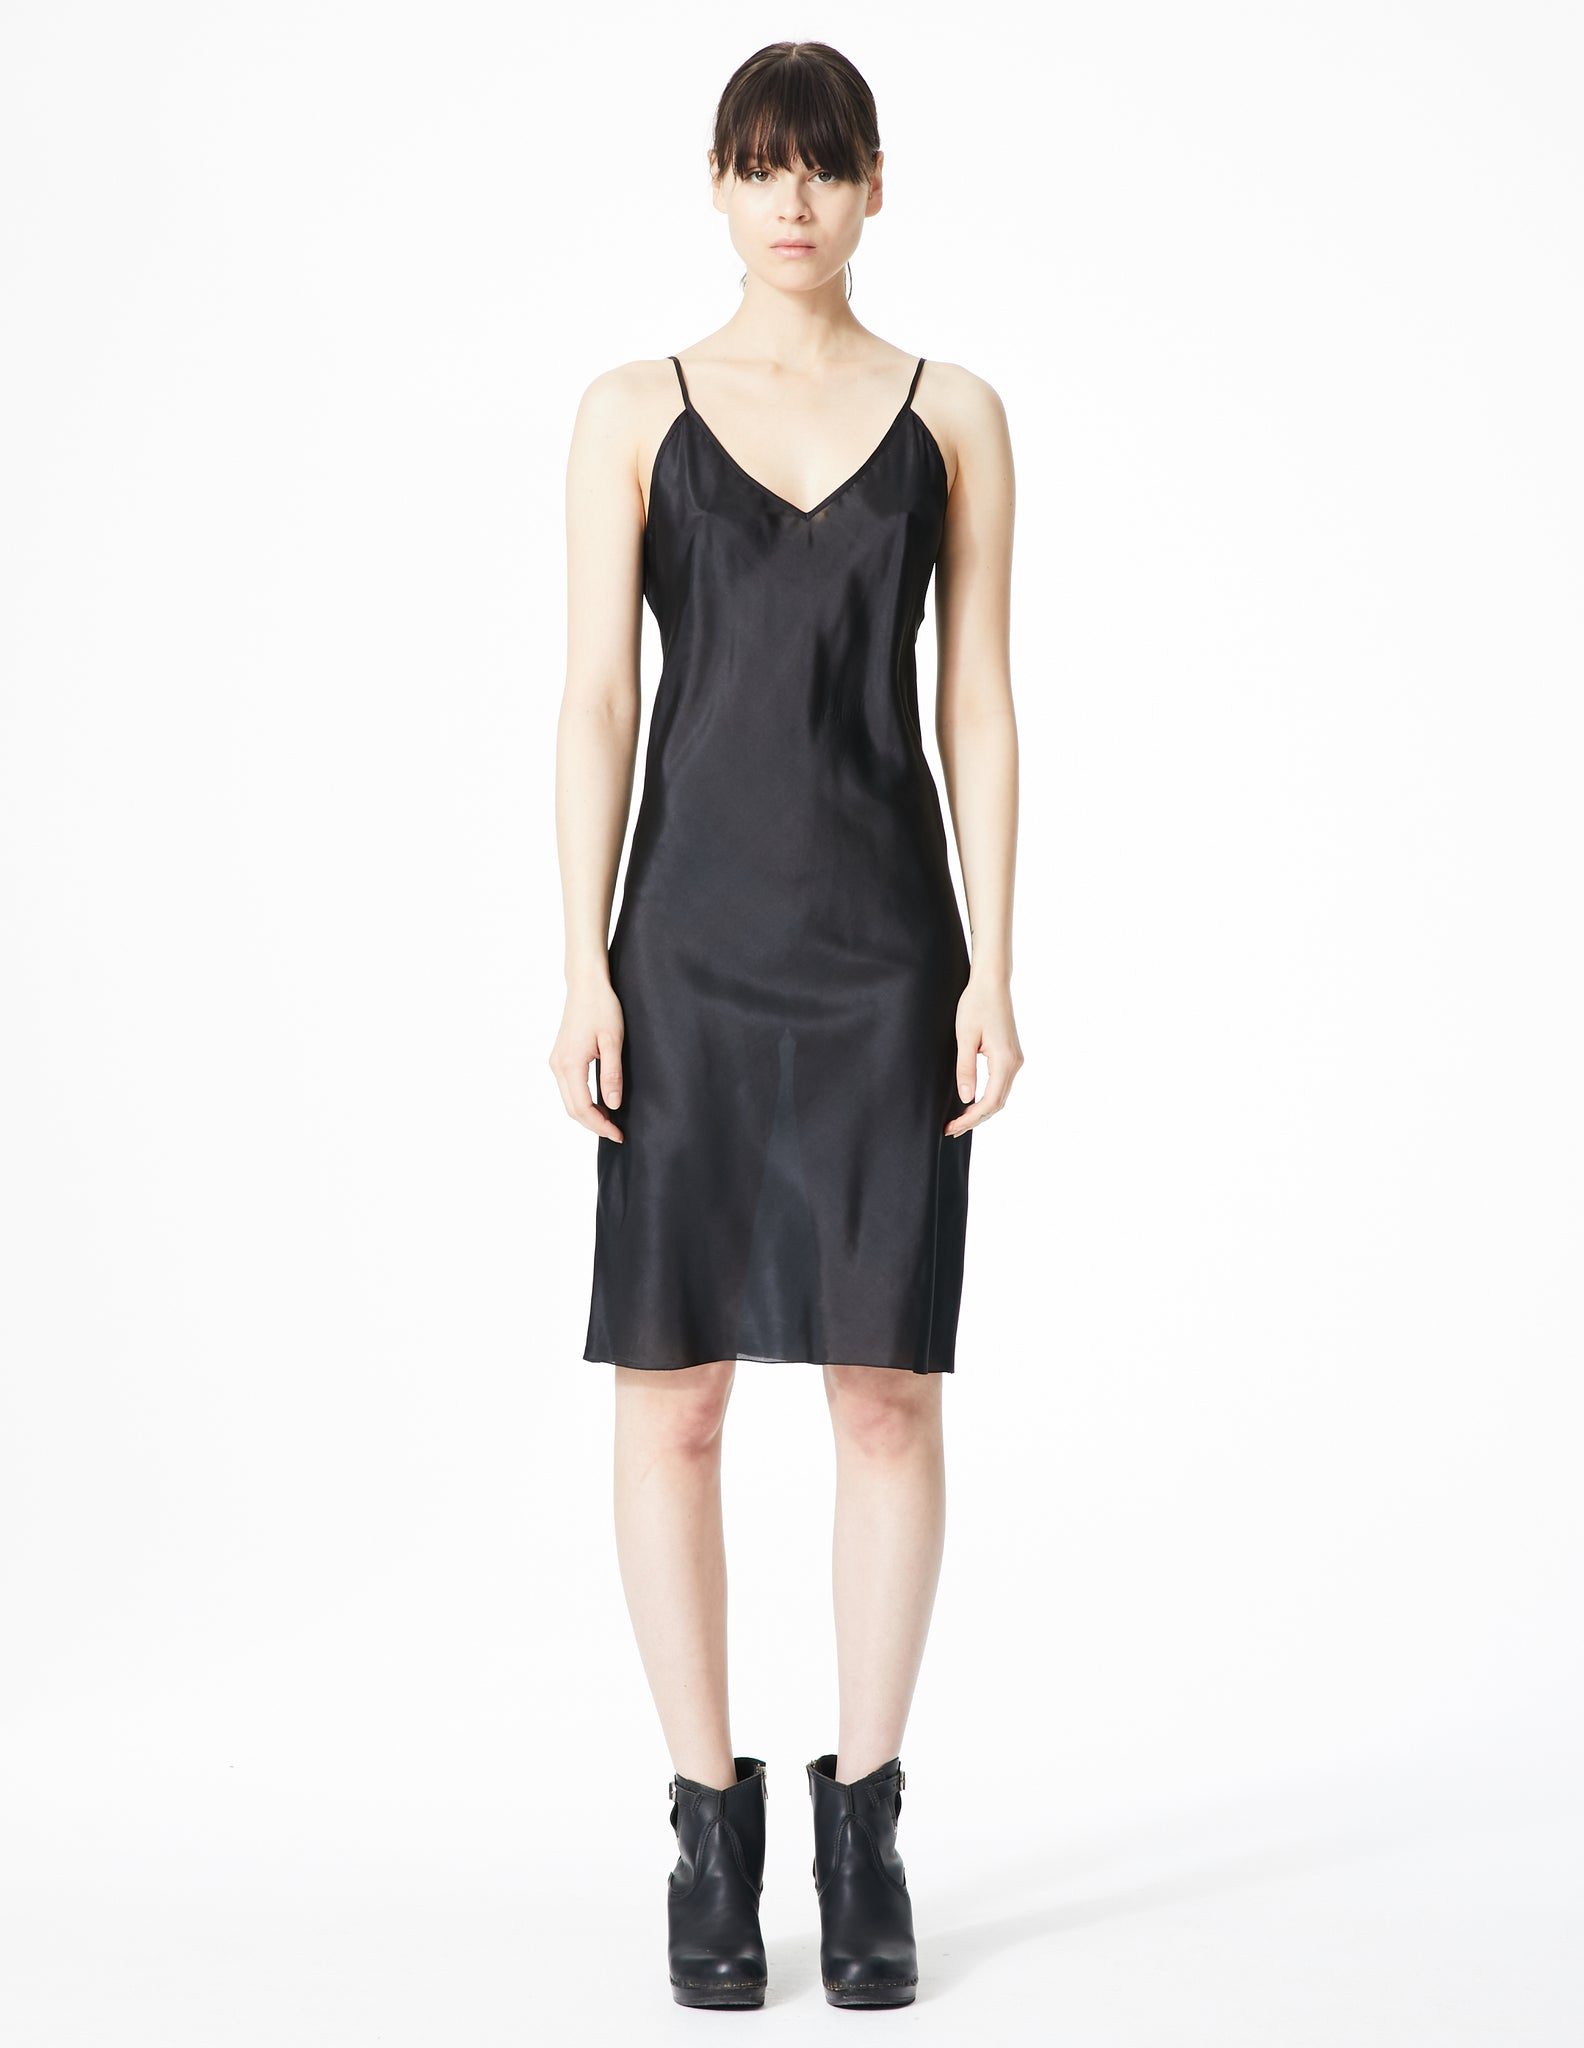 morgane le fay v-neck dress slip with thin straps.